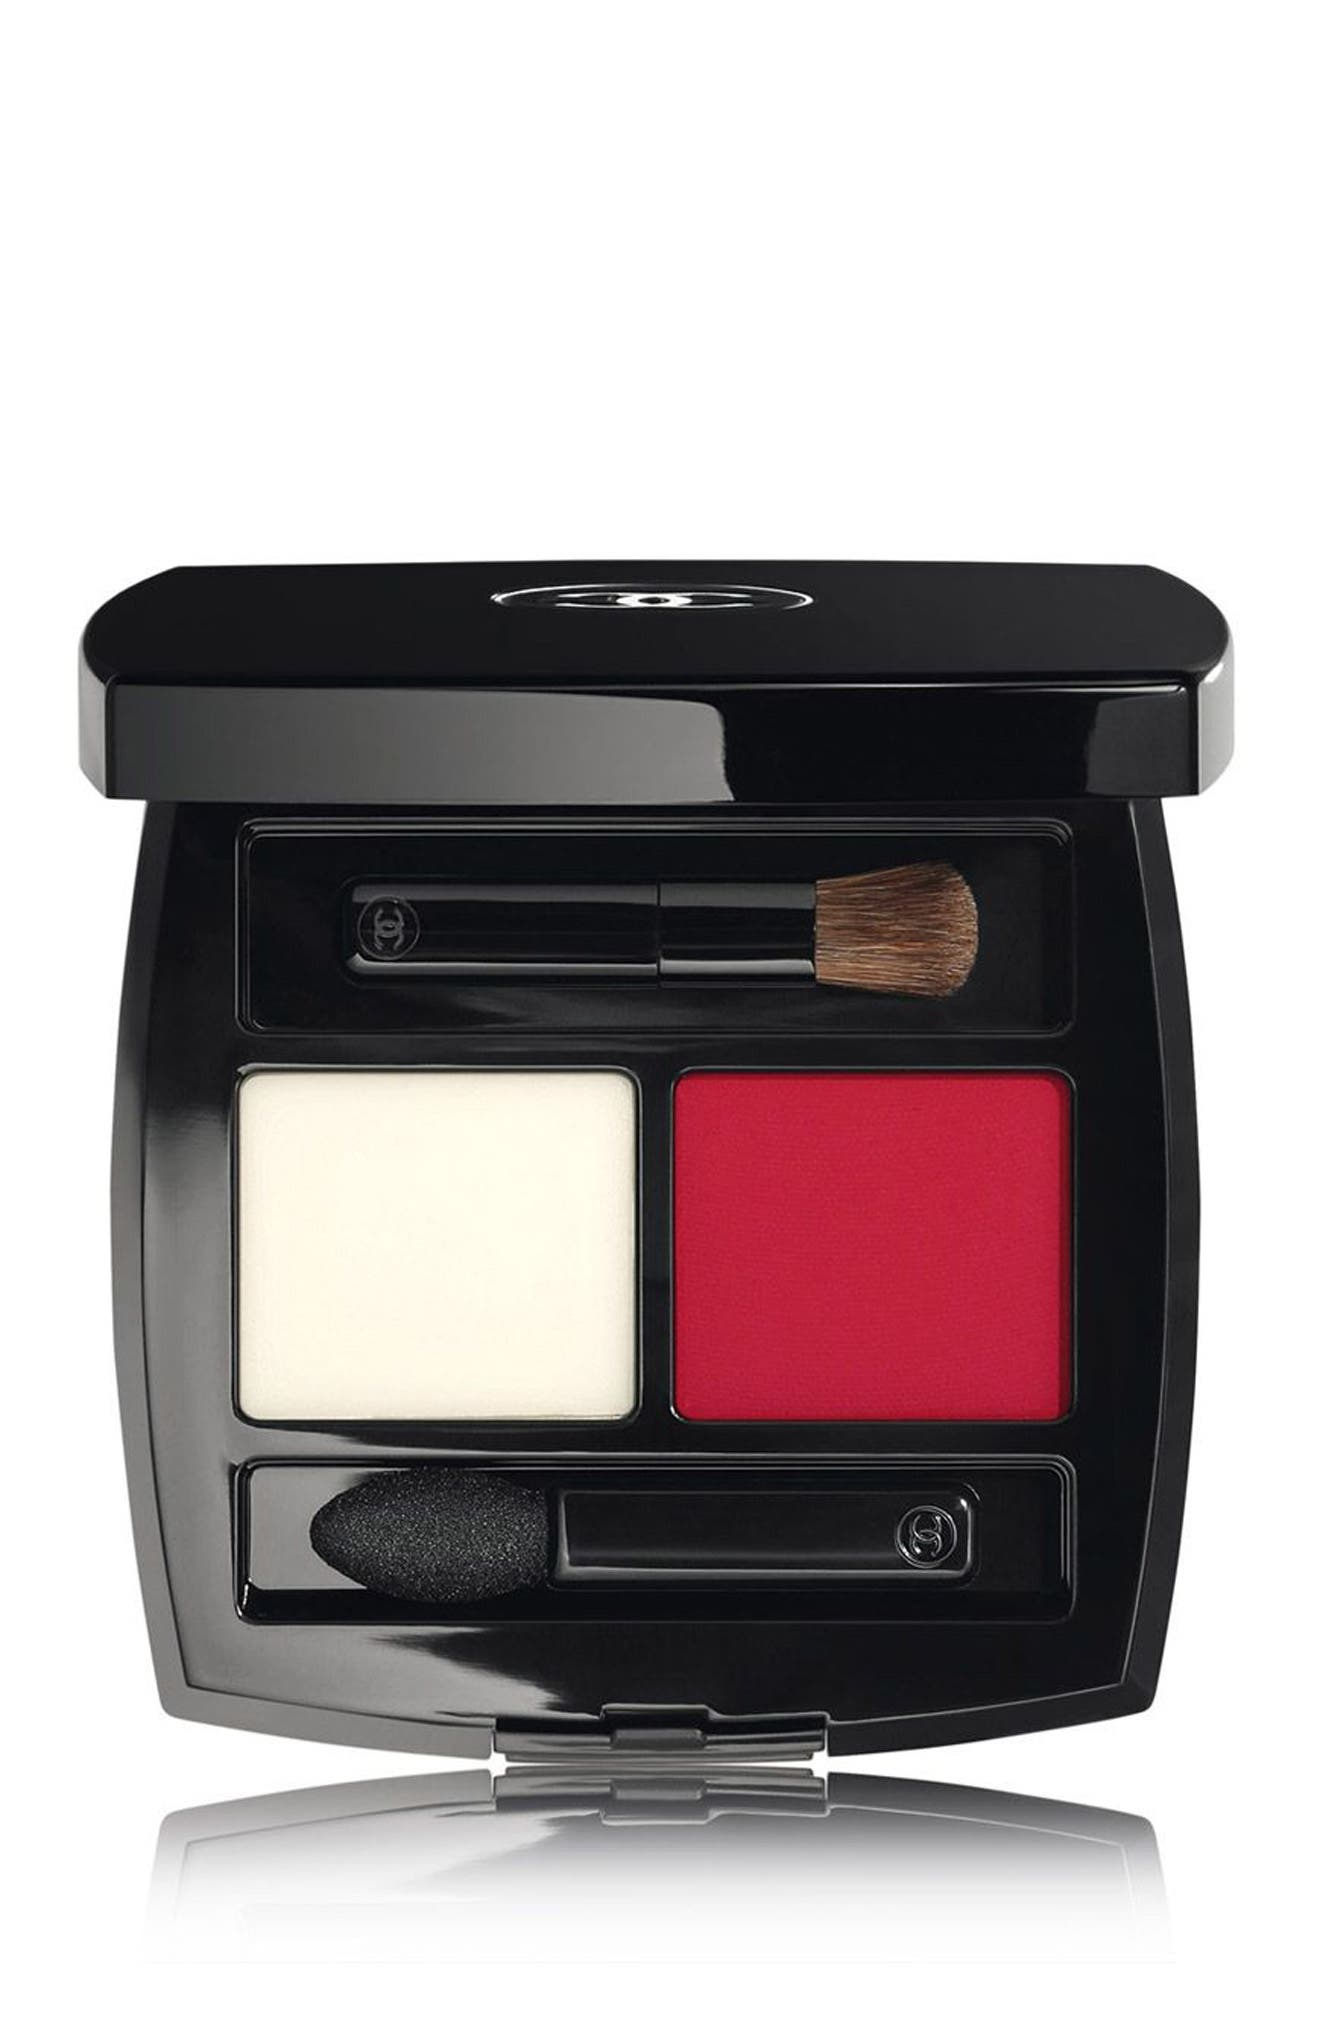 POUDRE LEVRES<br />Lip Balm and Powder Duo,                             Main thumbnail 1, color,                             415 Rosso Parthenope